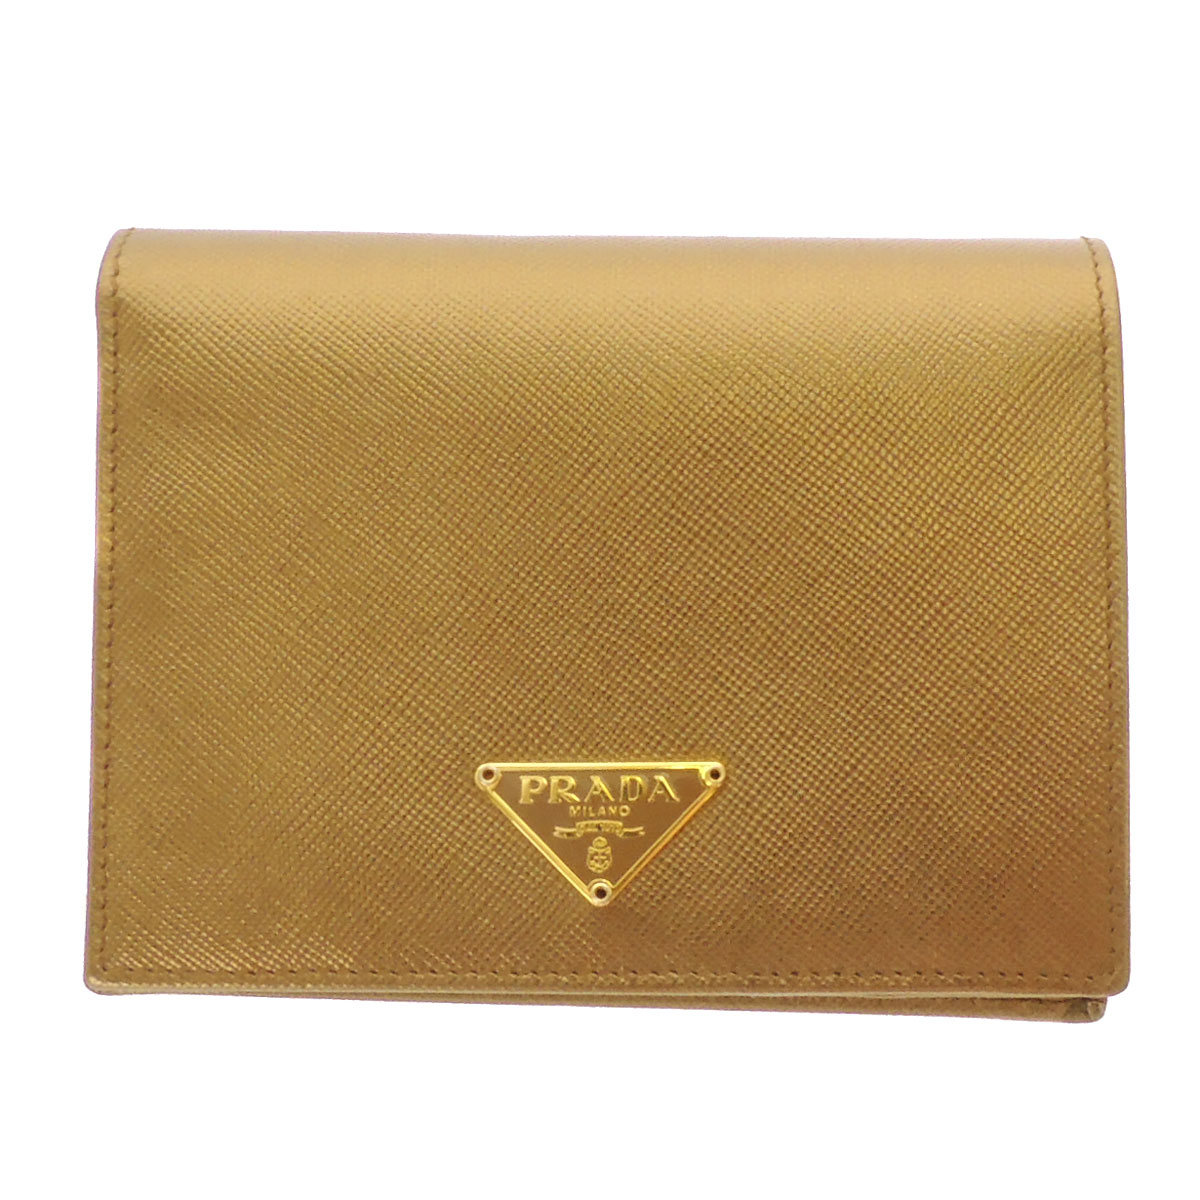 PRADA logo plate with two bi-fold wallet ( purses and ) Leather Womens